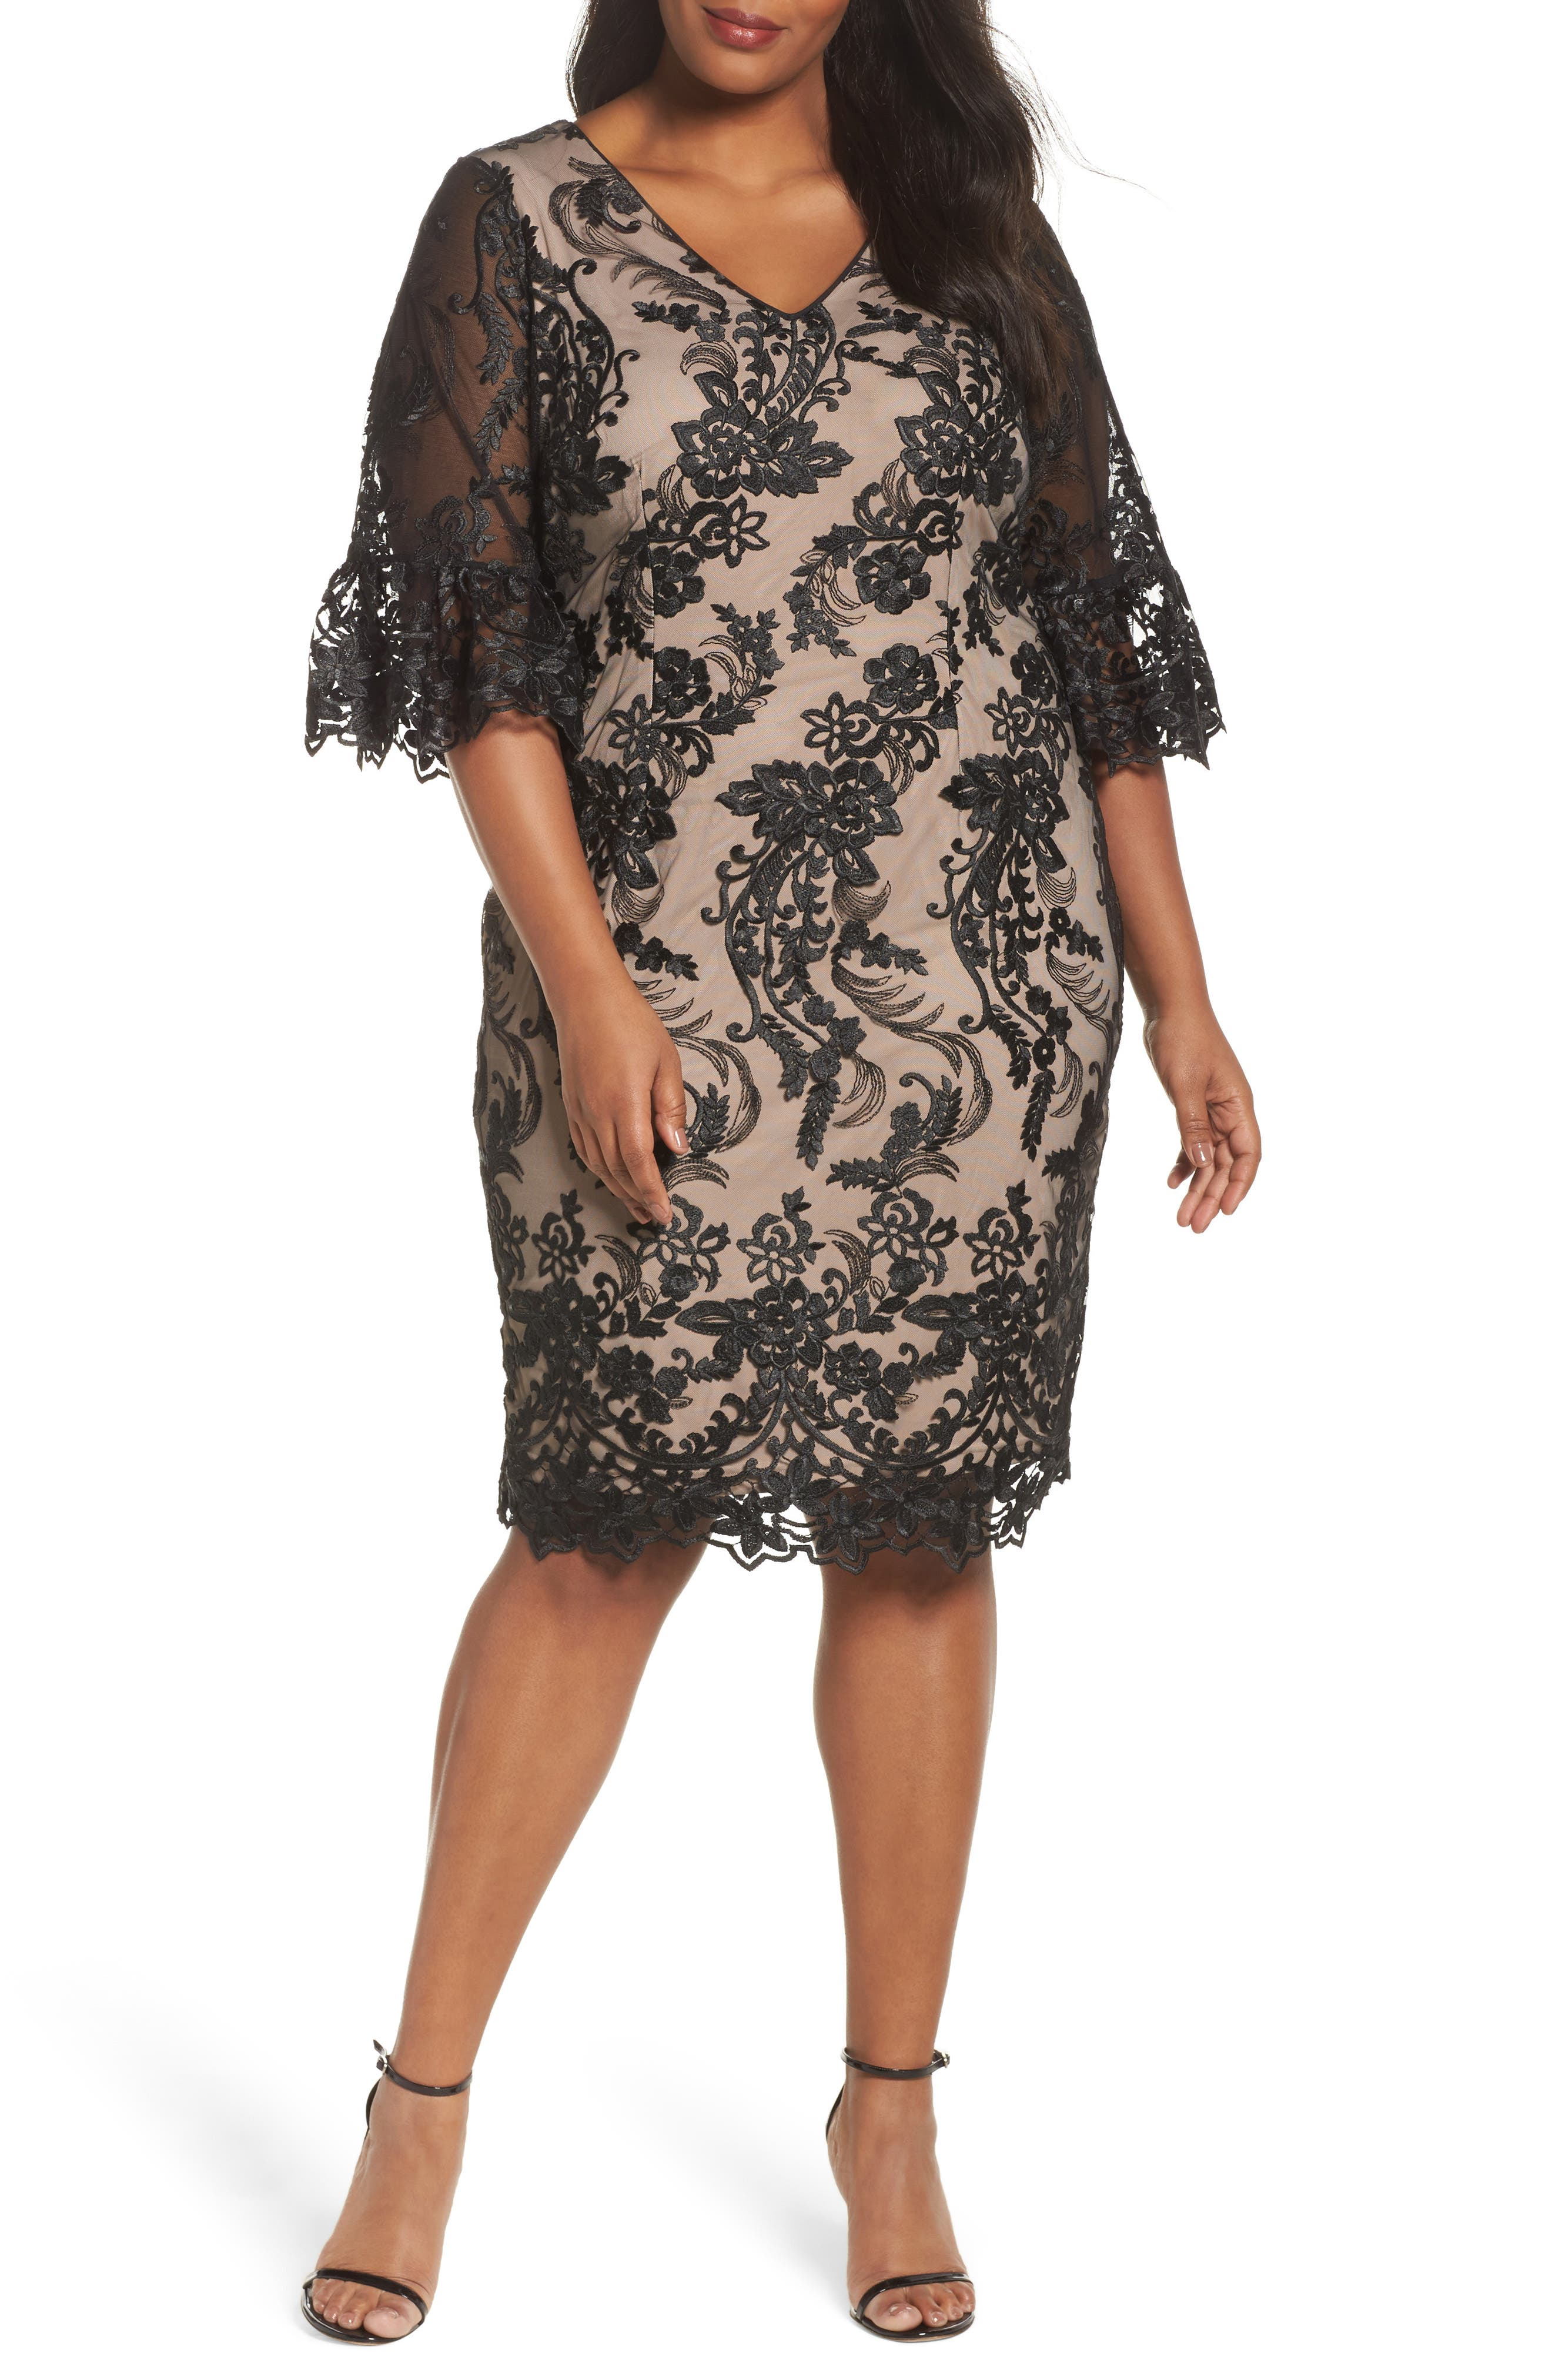 Alternate Image 1 Selected - Adrianna Papell Flounce Sleeve Embroidered Lace Dress (Plus Size)